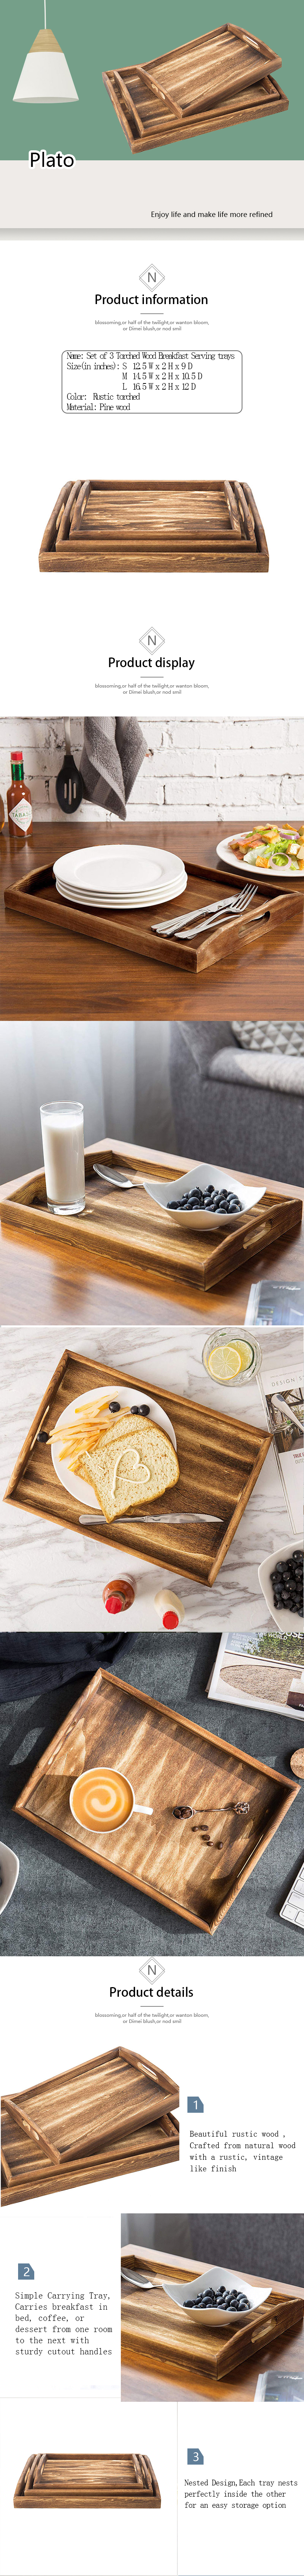 Set of 3 Torched Wood Rectangular  Breakfast, Coffee Table/Butler  Serving Trays